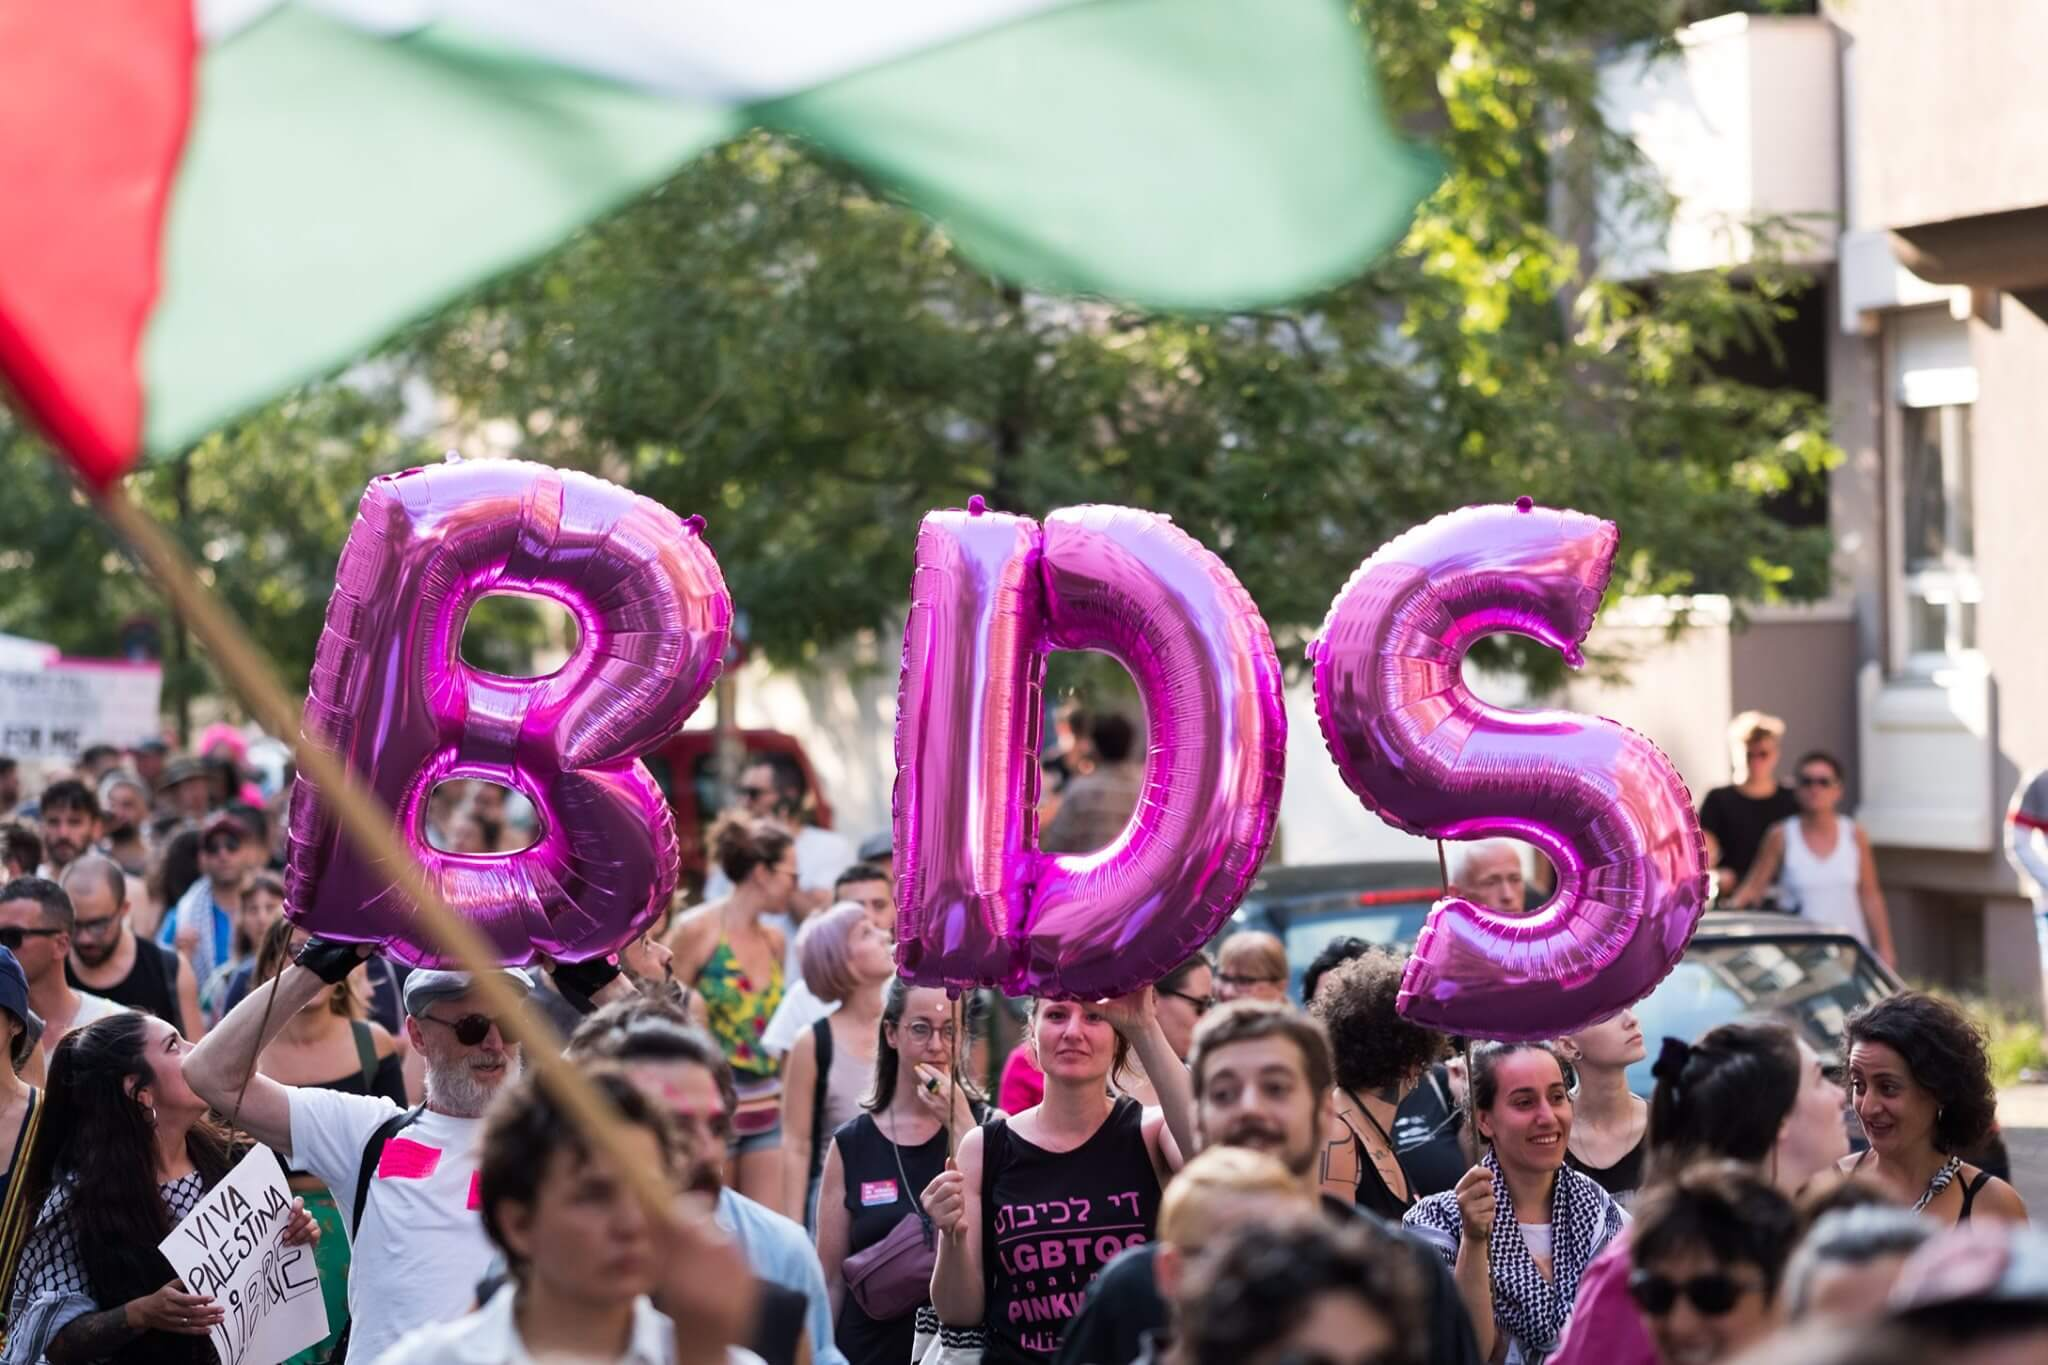 Berlin Radical Queer March, July 27, 2019, Berlin, Germany. (Photo: Facebook/Palästina Spricht)